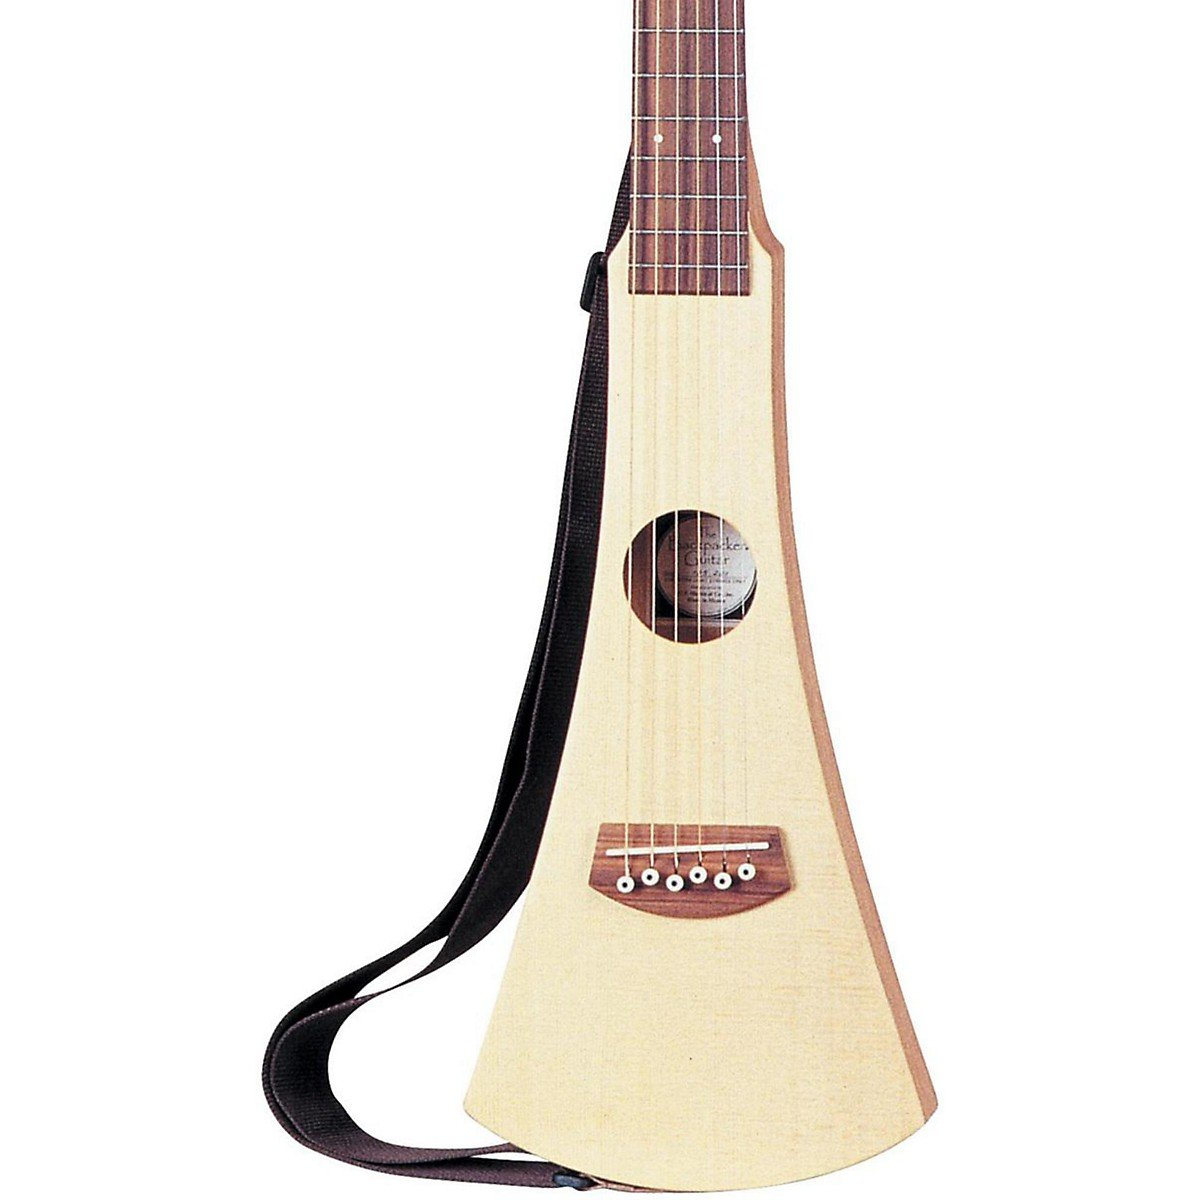 MARTIN Steel String Backpacker Guitar バックパッカー 正規輸入品 B0002IL37Y